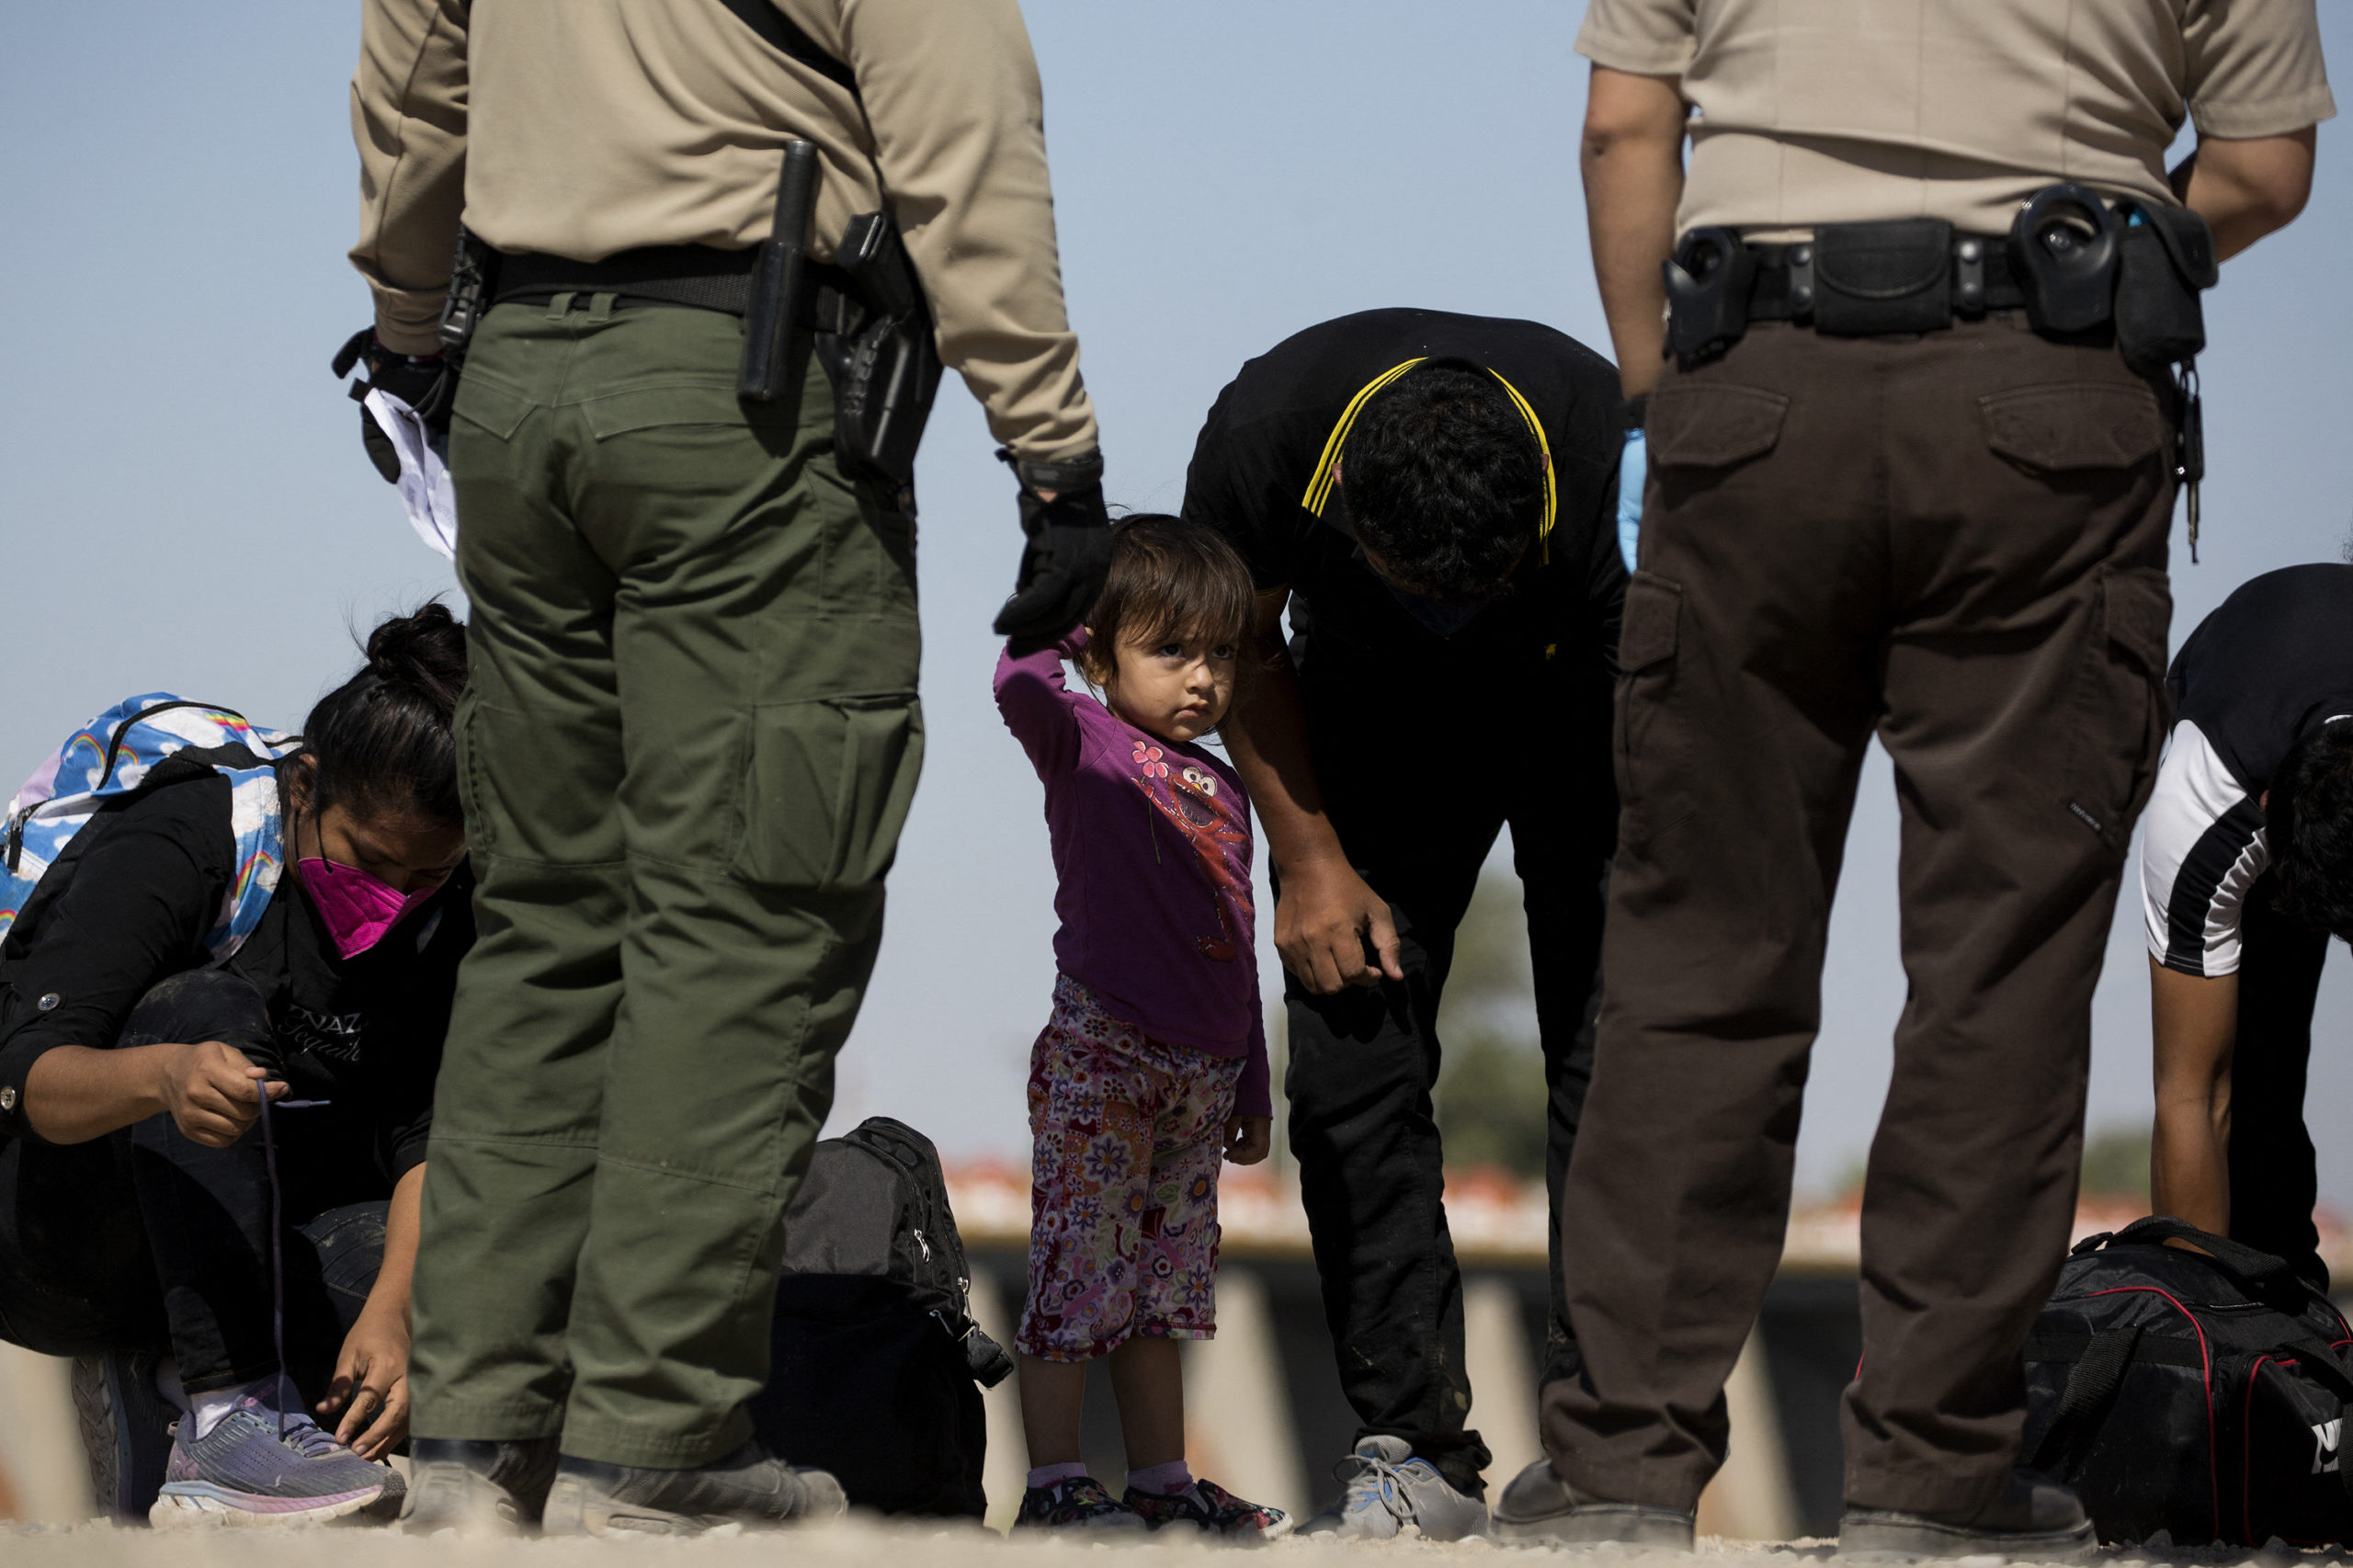 A girl looks on as migrants from Guatemala remove their shoelaces as they are initially processed after turning themselves over to authorities at the US-Mexico border May 12, 2021 in Yuma, Arizona (Photo by RINGO CHIU/AFP via Getty Images)